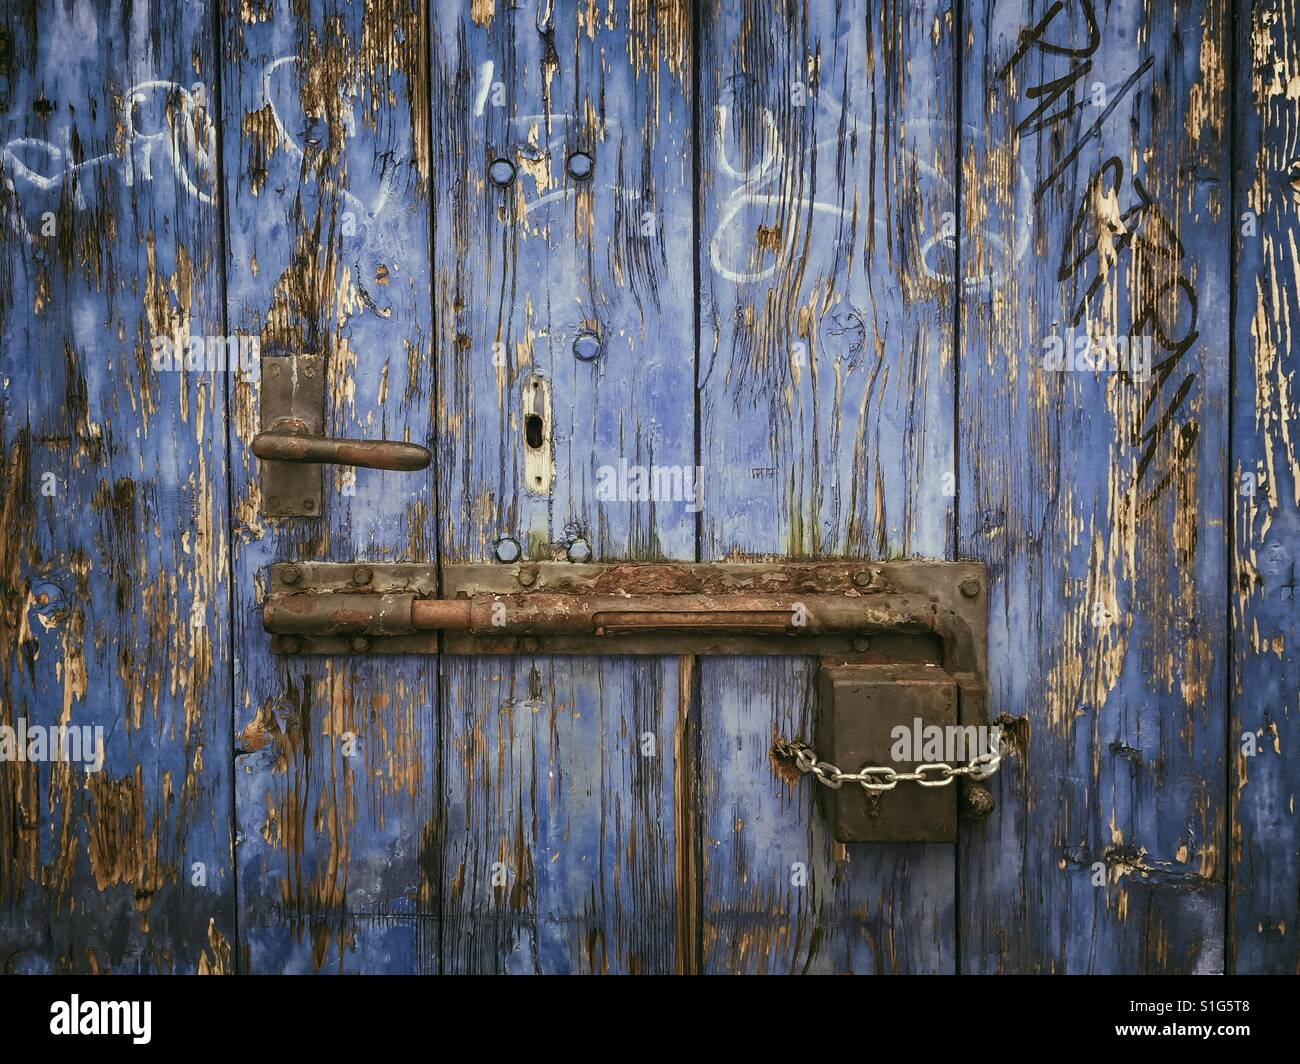 Rusty porte coulissante serrure de porte bleue en bois patiné Photo Stock